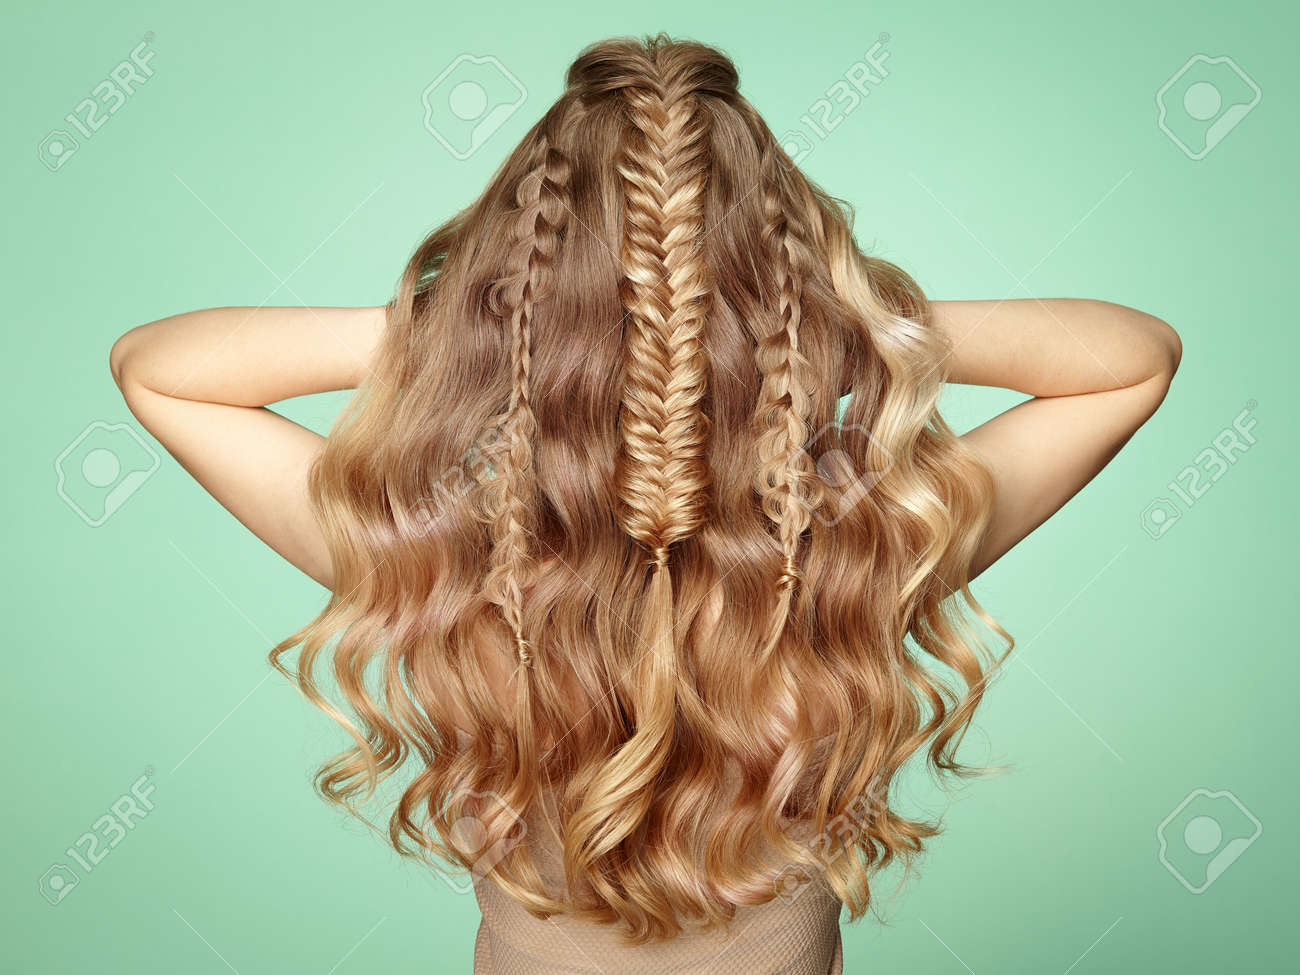 Blonde Girl with Long and Shiny Curly Hair. Beautiful Model Woman with Curly Hairstyle. Care and Beauty Hair Products. Lady with braided hair - 112453795